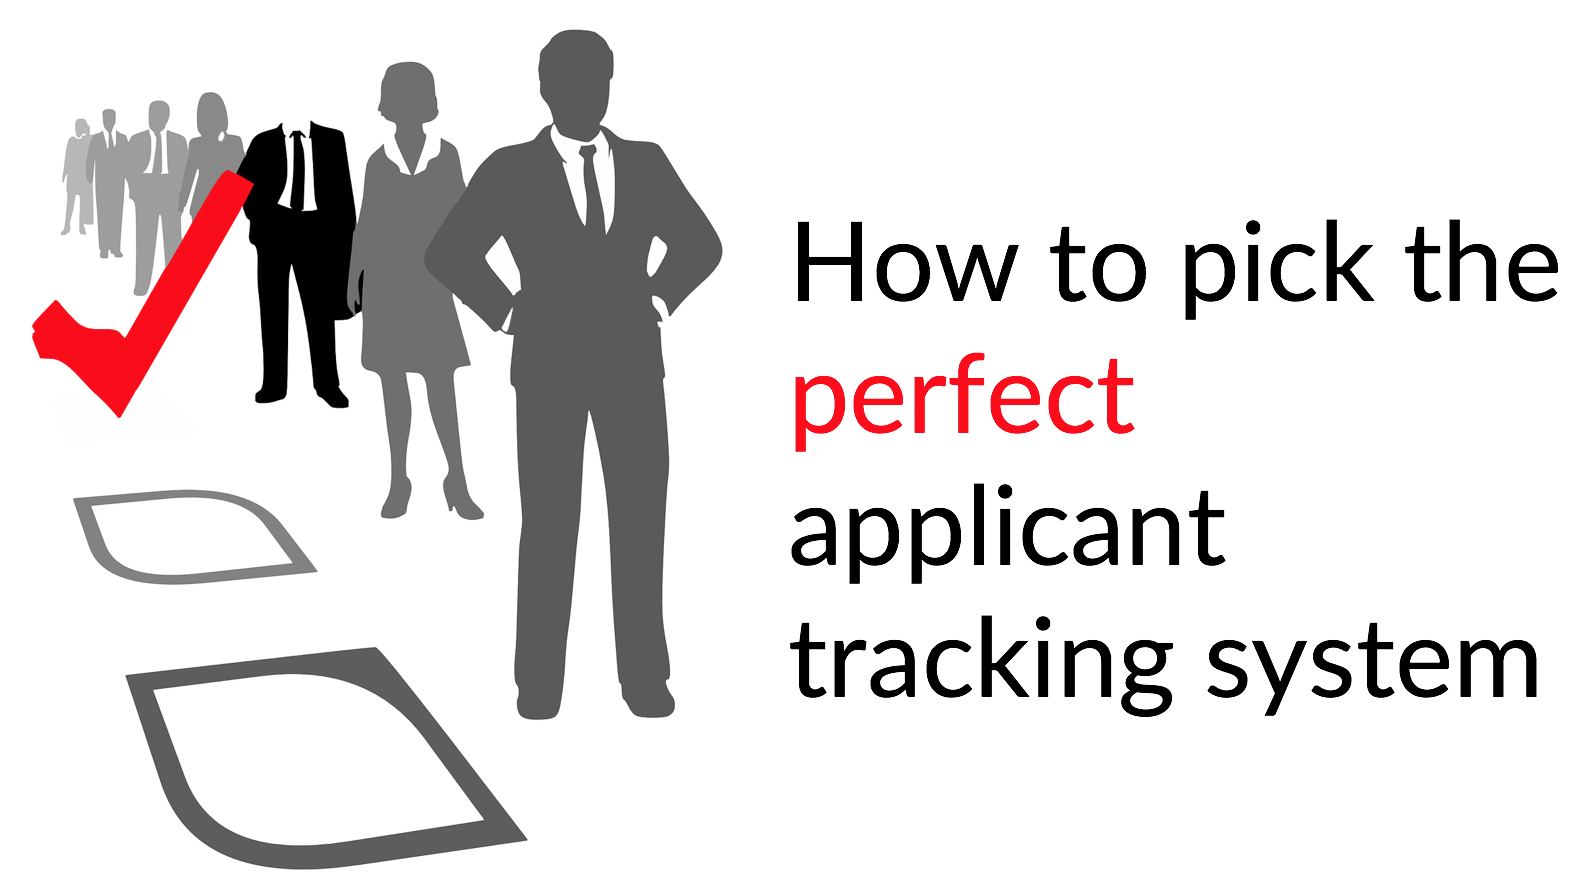 22 questions to evaluate applicant tracking systems and choose the perfect ATS for your organization